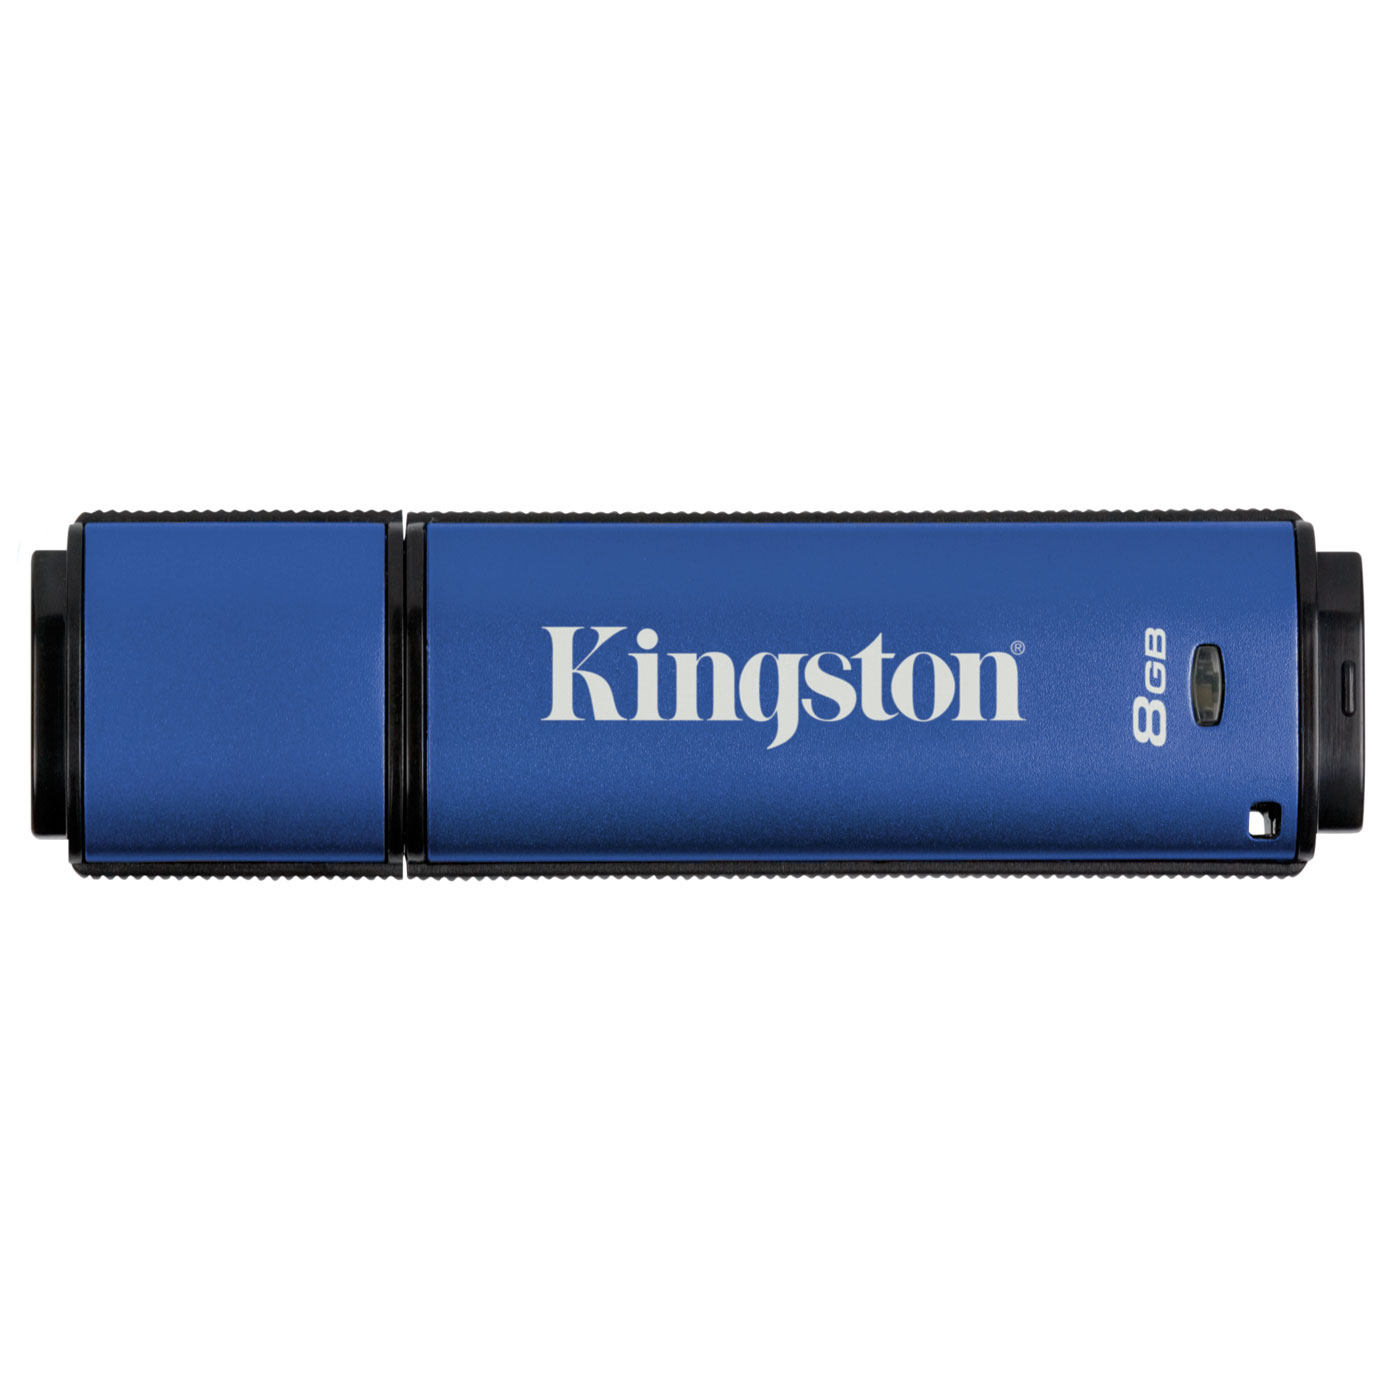 Clé USB Kingston DataTraveler Vault Privacy Managed 8 Go Kingston DataTraveler Vault Privacy Managed 8 Go - USB 2.0 (garantie constructeur 5 ans)